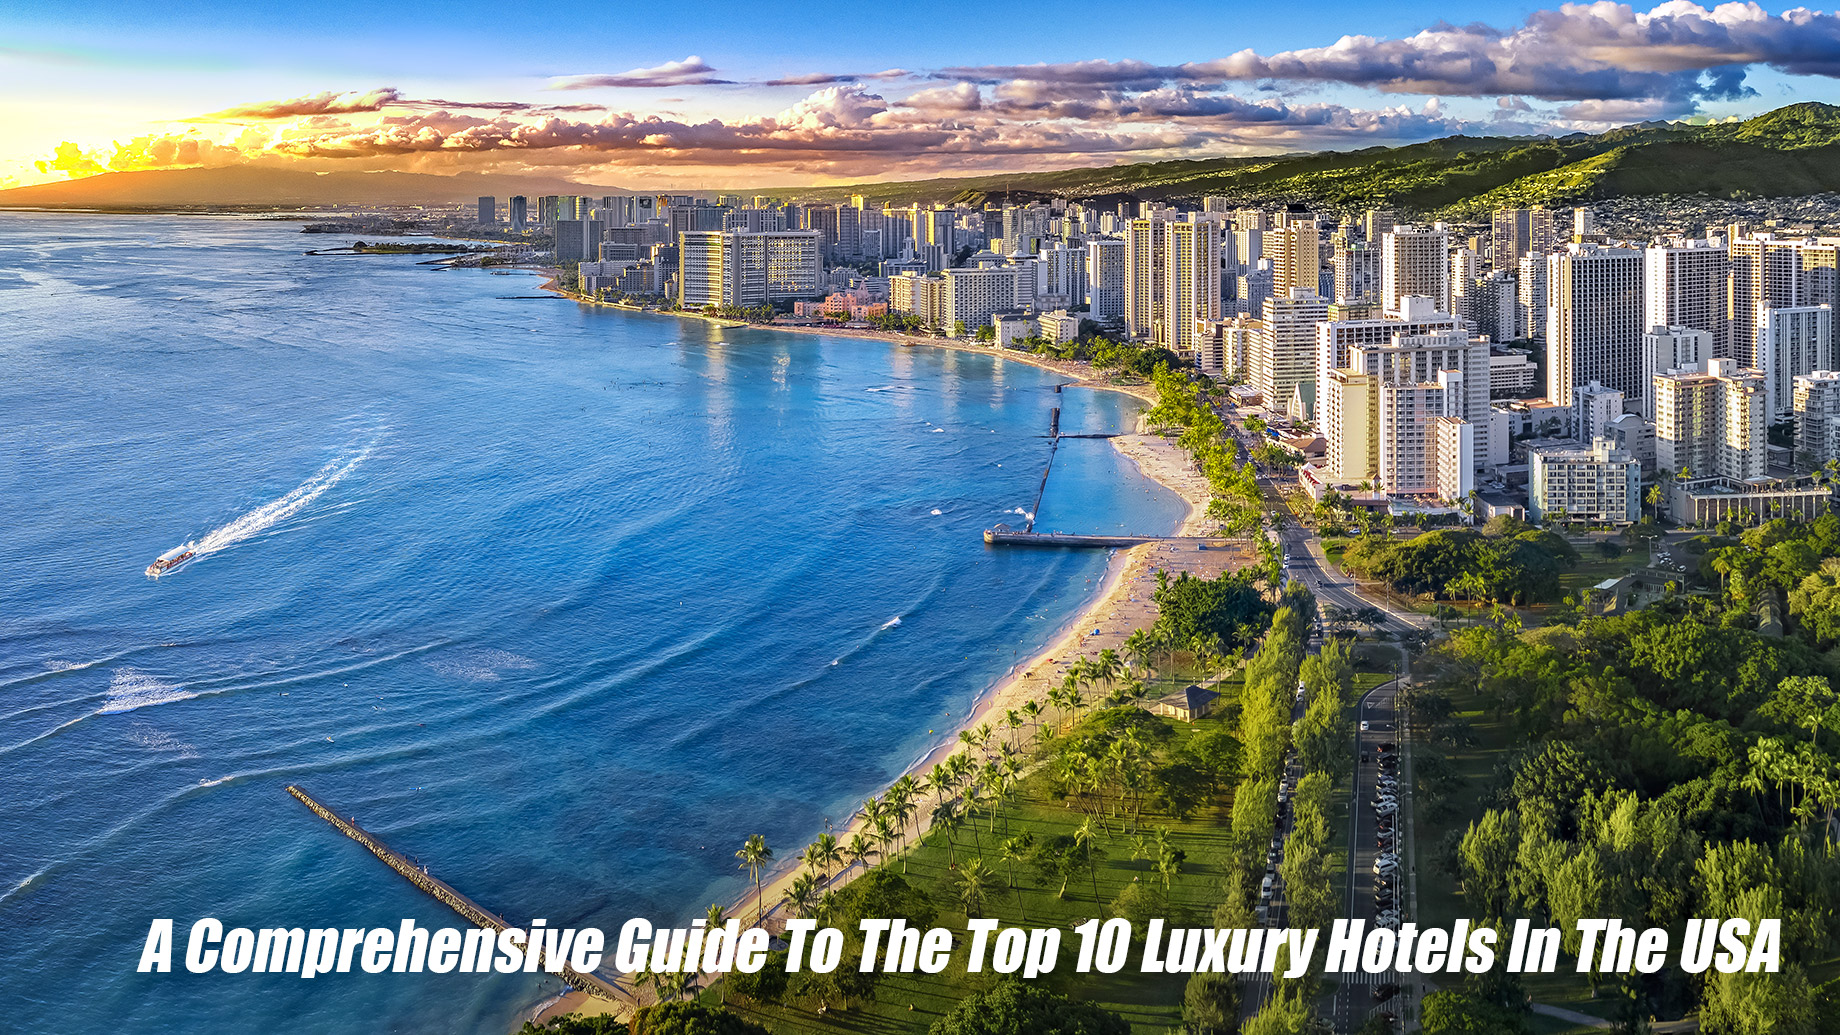 A Comprehensive Guide To The Top 10 Luxury Hotels In The USA